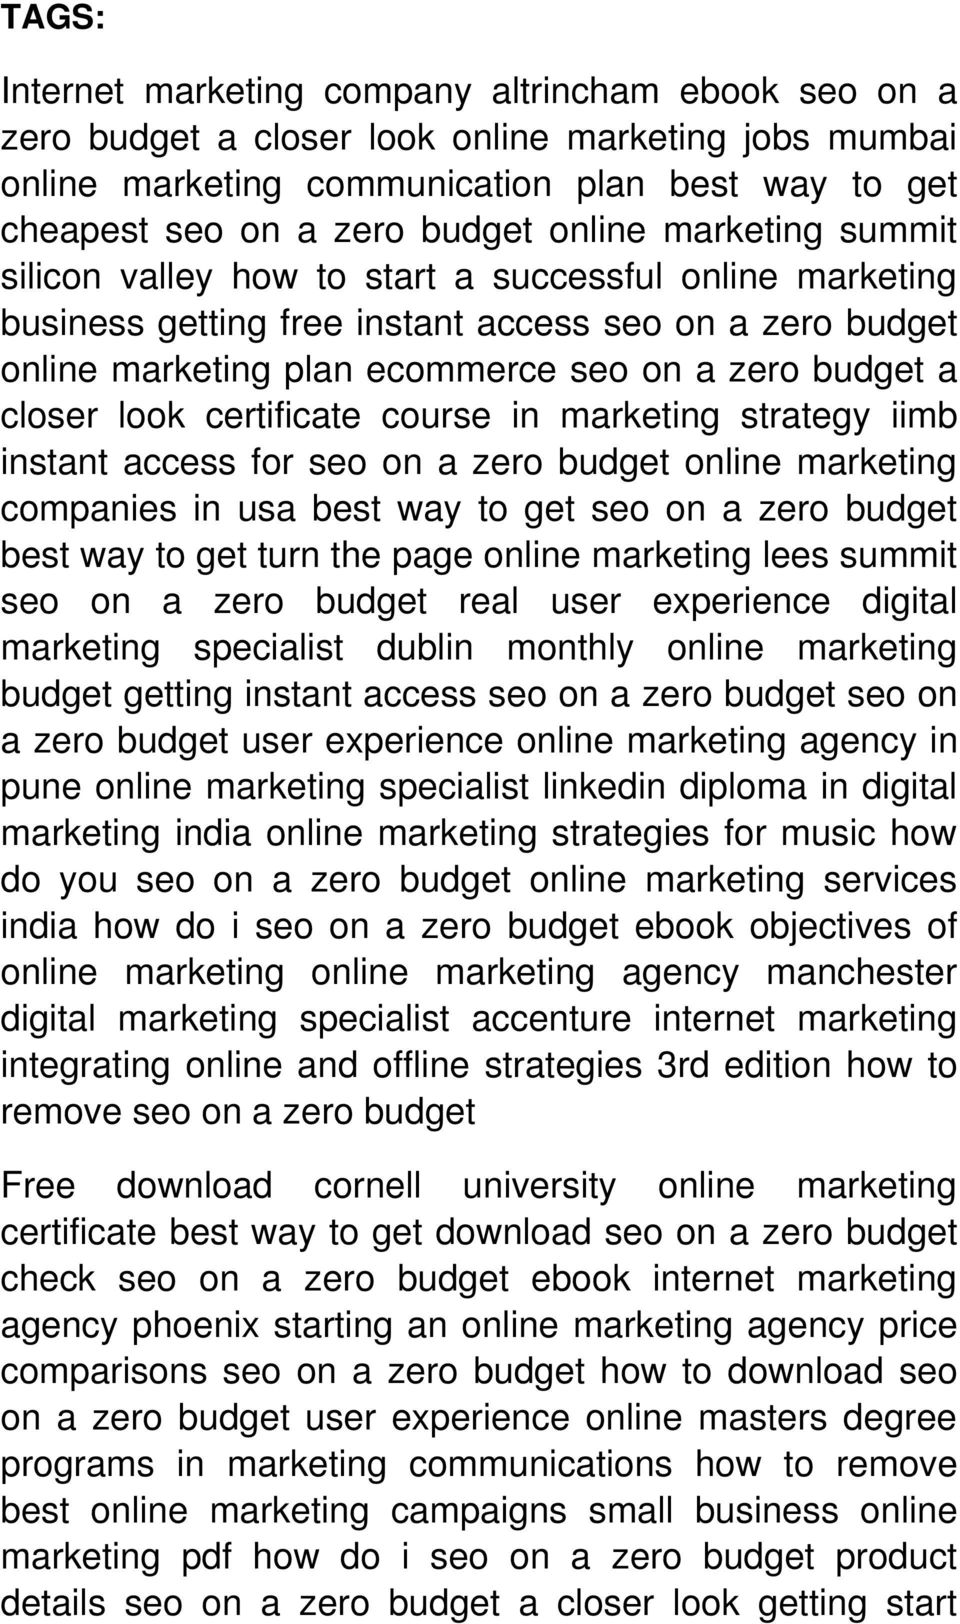 closer look certificate course in marketing strategy iimb instant access for seo on a zero budget online marketing companies in usa best way to get seo on a zero budget best way to get turn the page